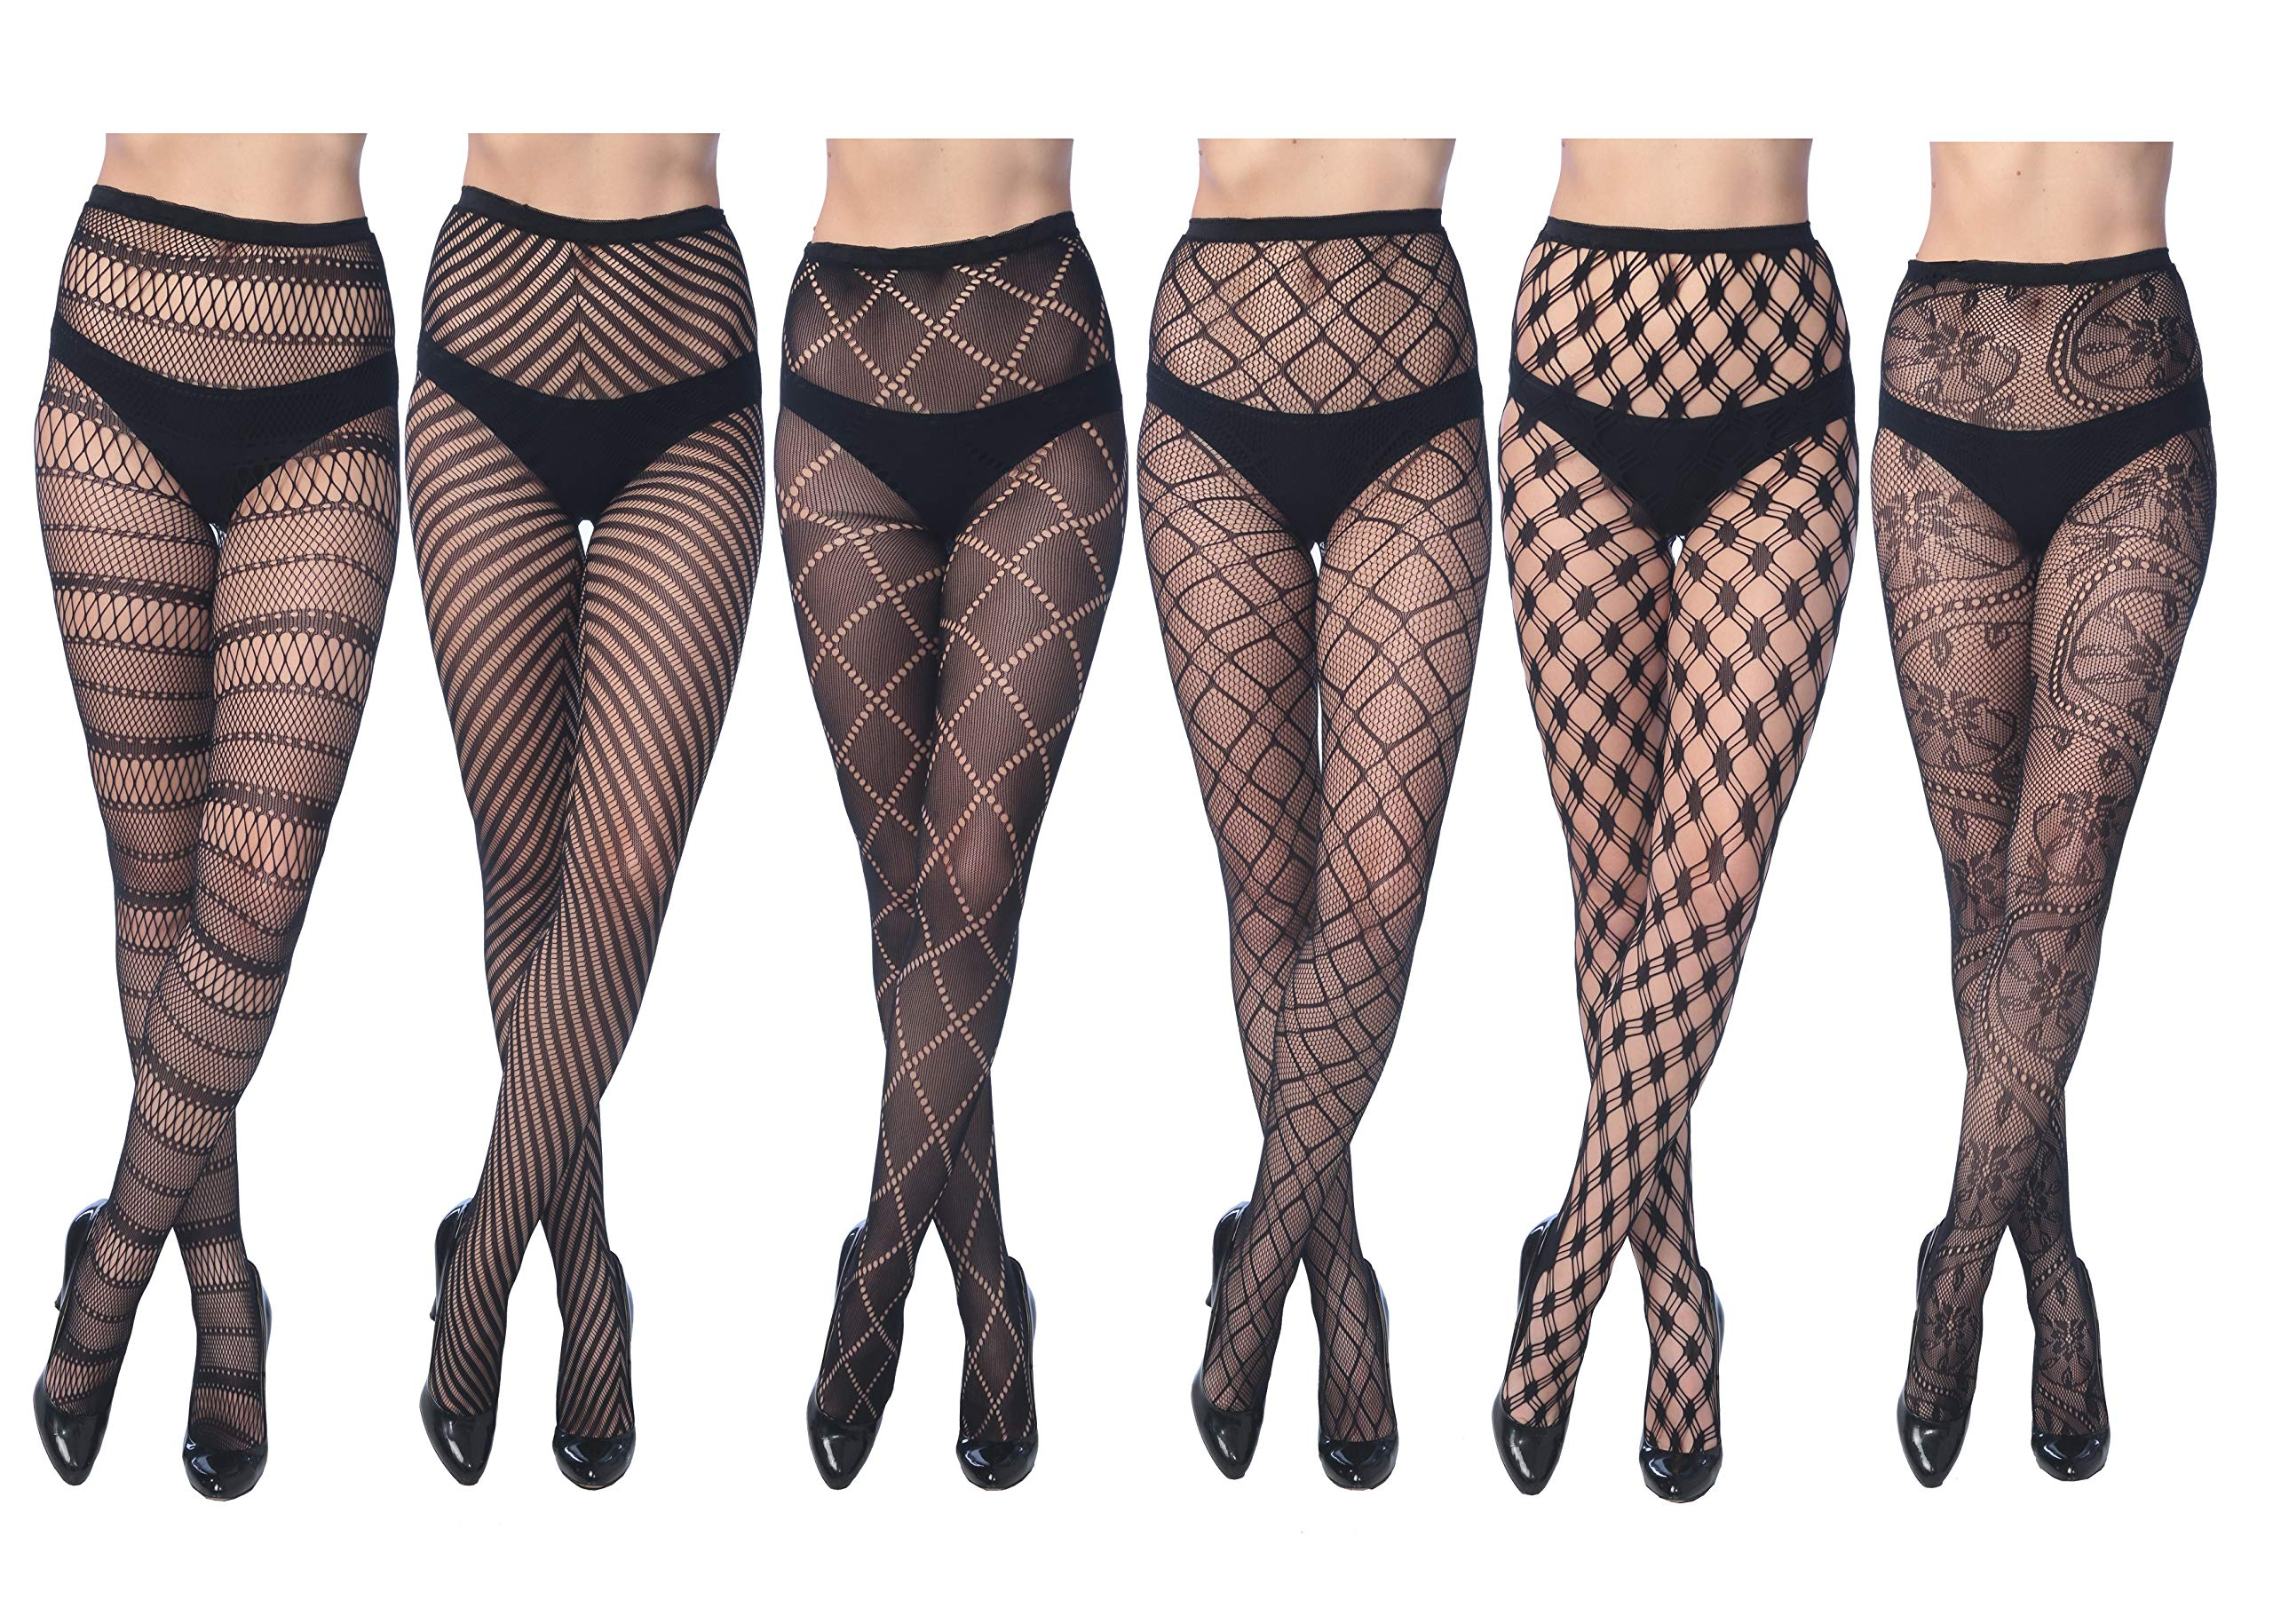 Frenchic Fishnet Women's Lace Stockings Tights Sexy Pantyhose Regular & Plus Sizes (Pack of 6)